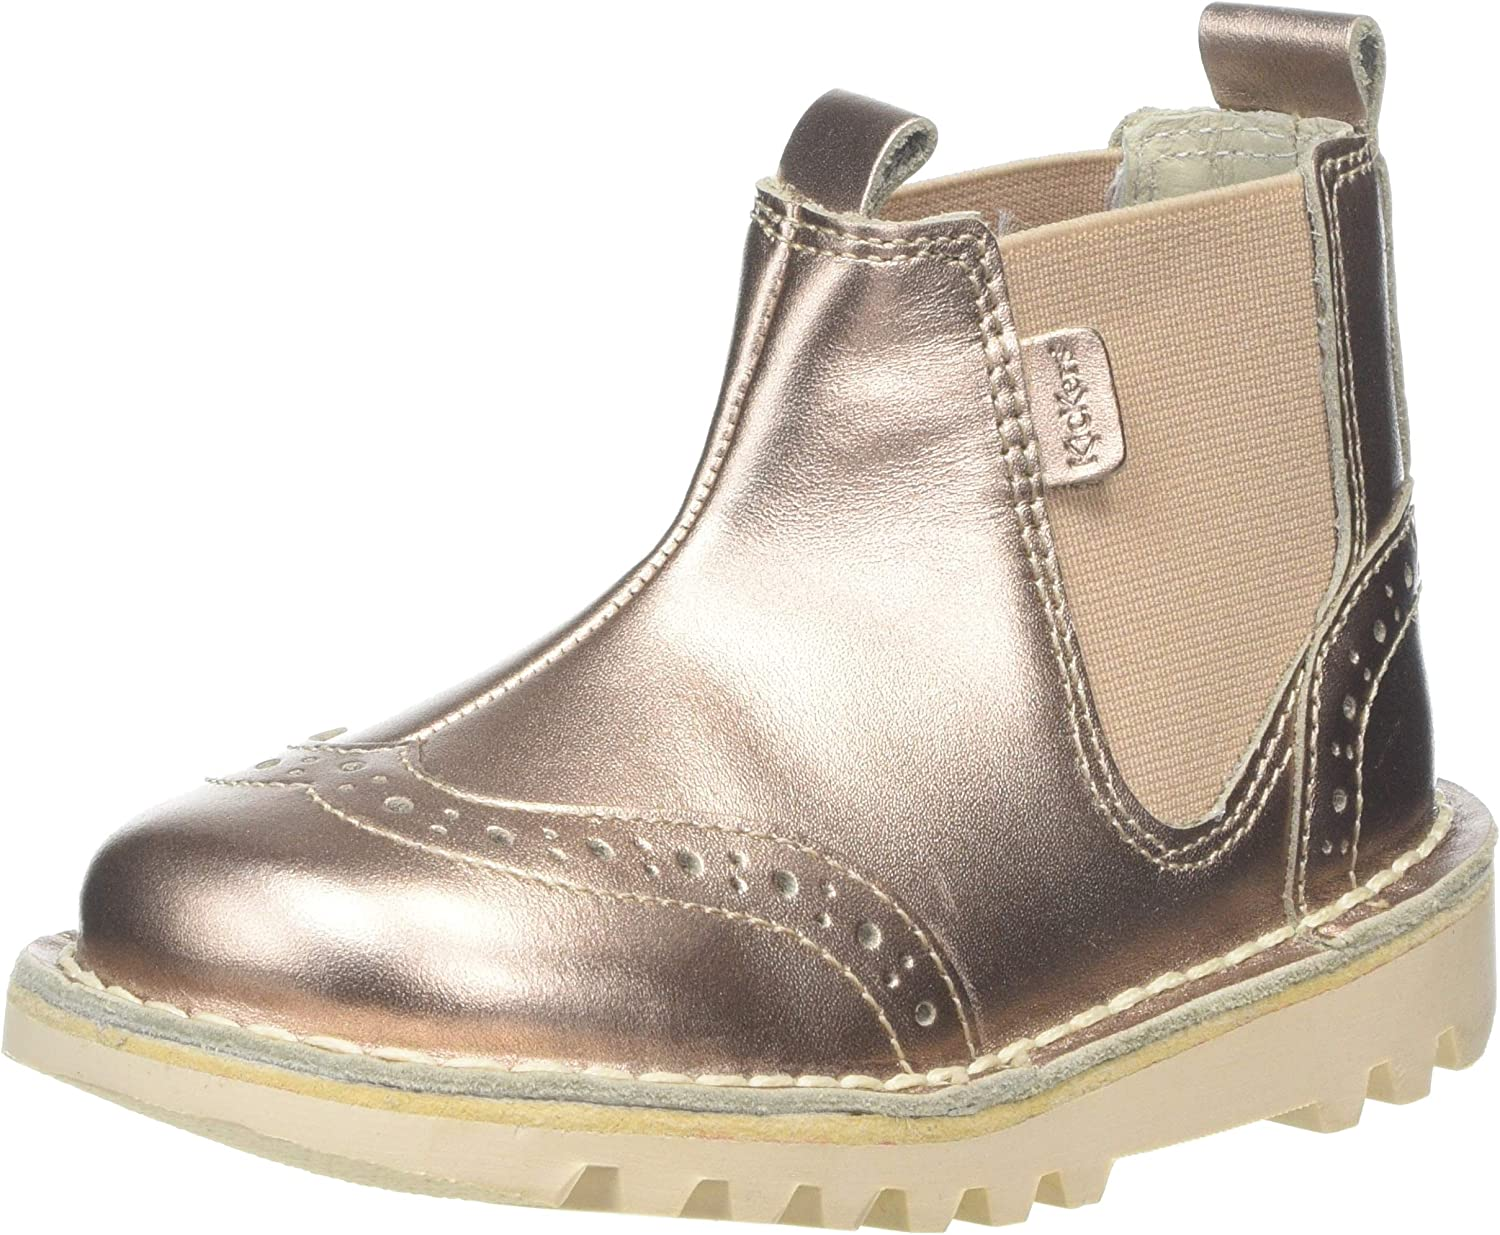 Kickers Brogue Chella Bottes b/éb/é Fille